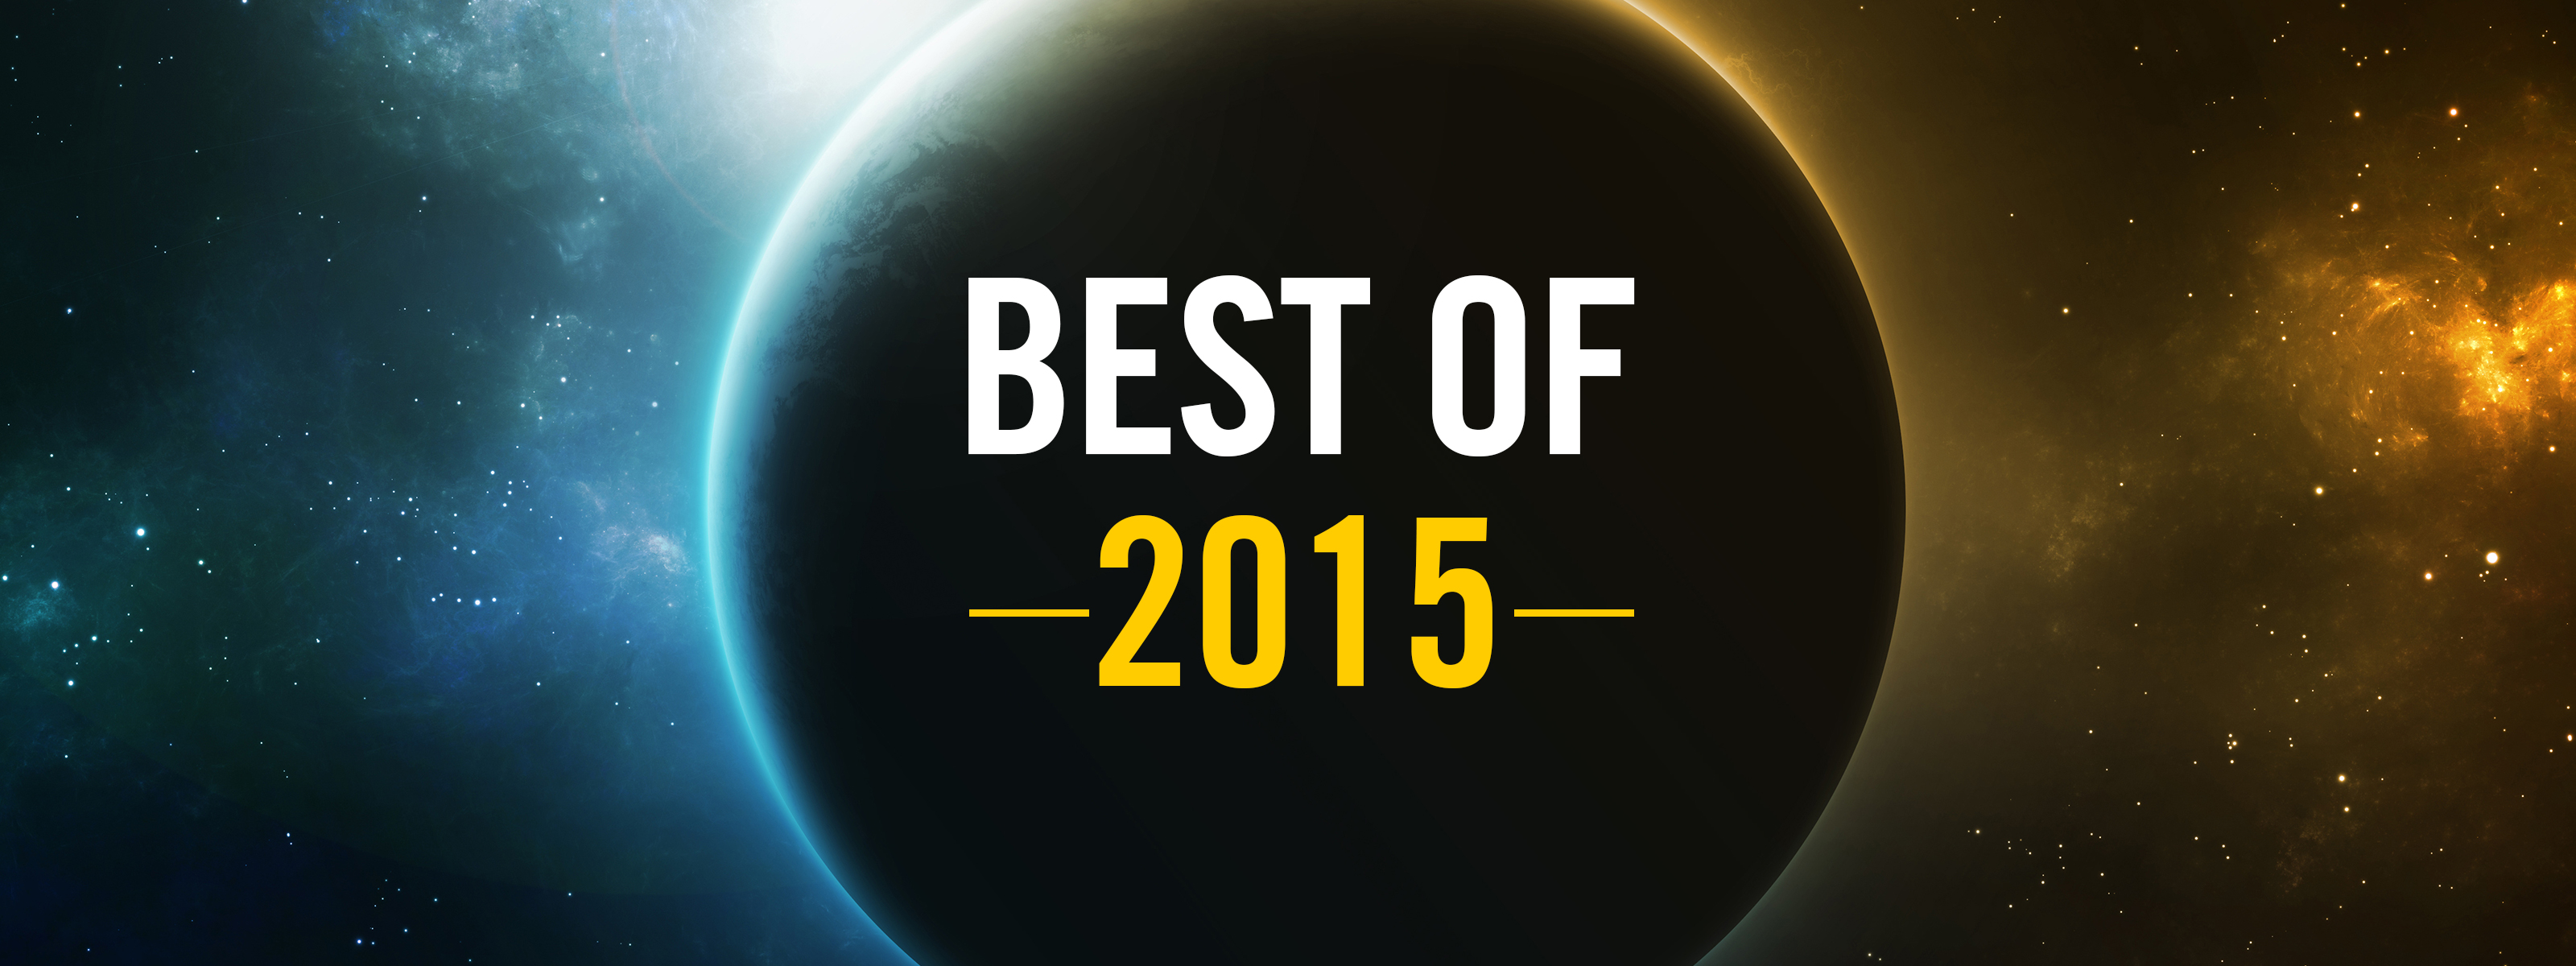 The Best of ImanWire in 2015